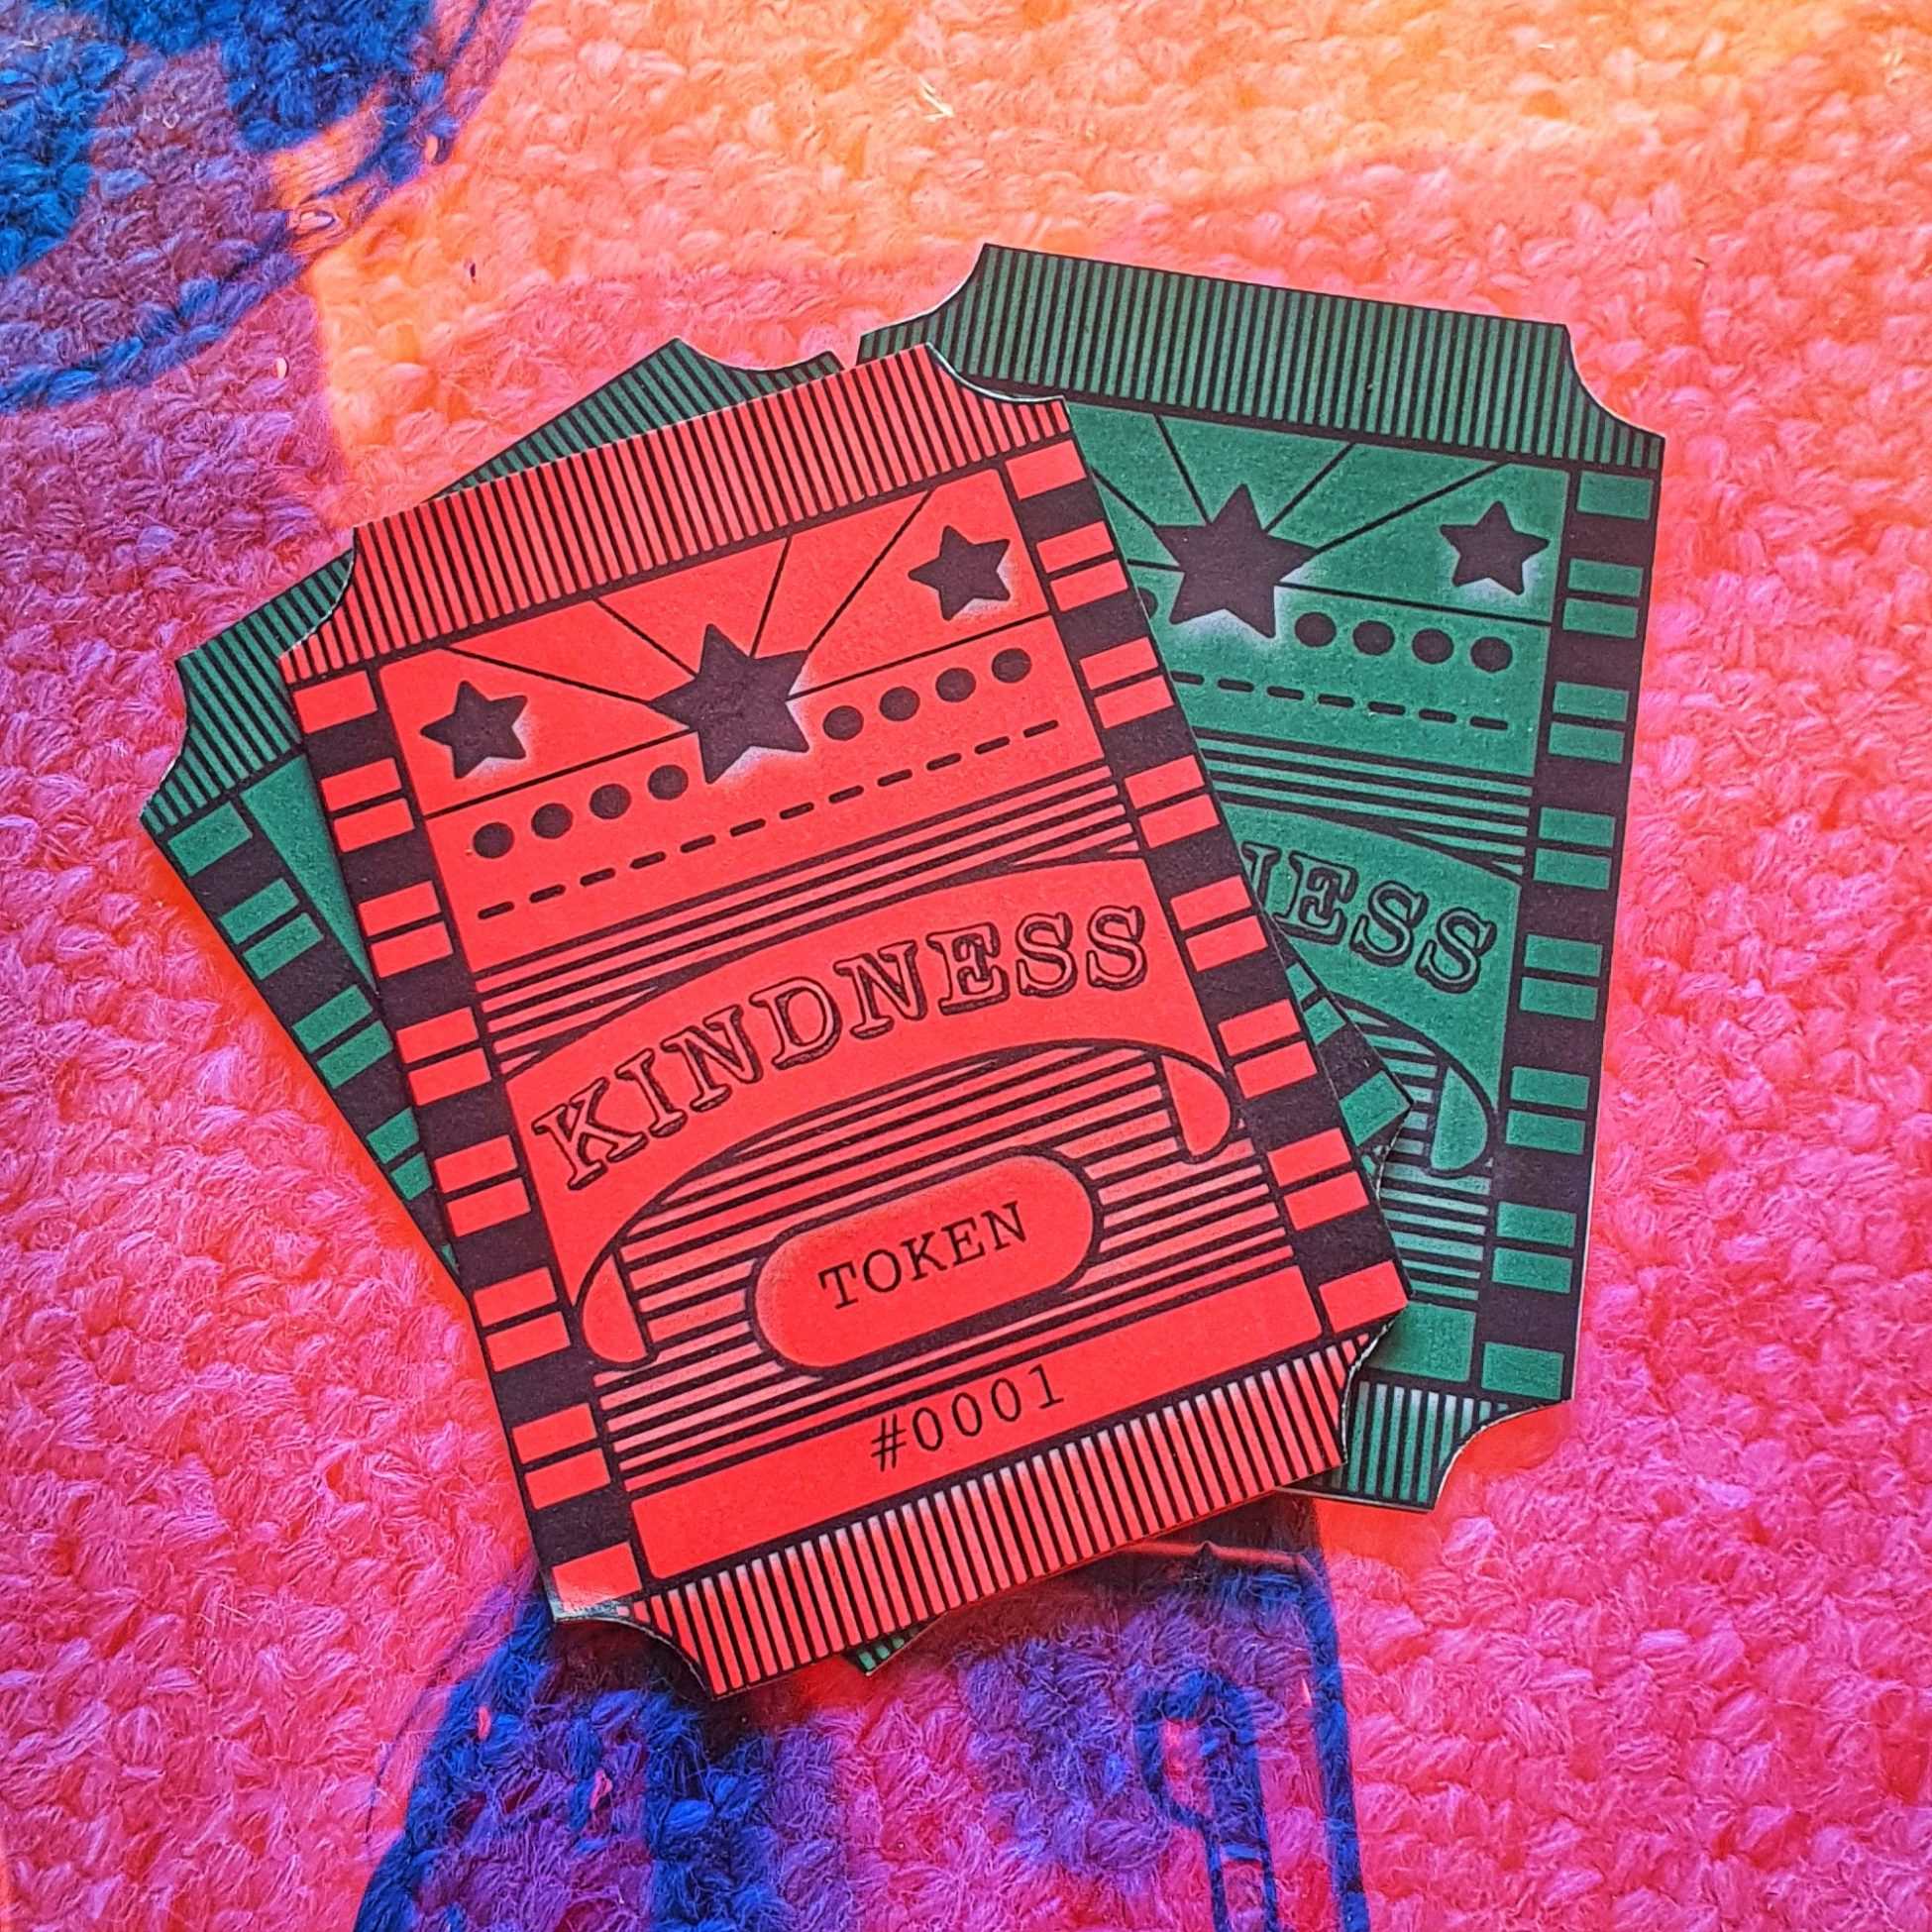 Three pieces of paper in the style of vintage arcade tokens are on a pink and blue textured background. There is one red token and two green tokens. They have the words 'Kindness Token #0001' and a design of stars and stripes in black.